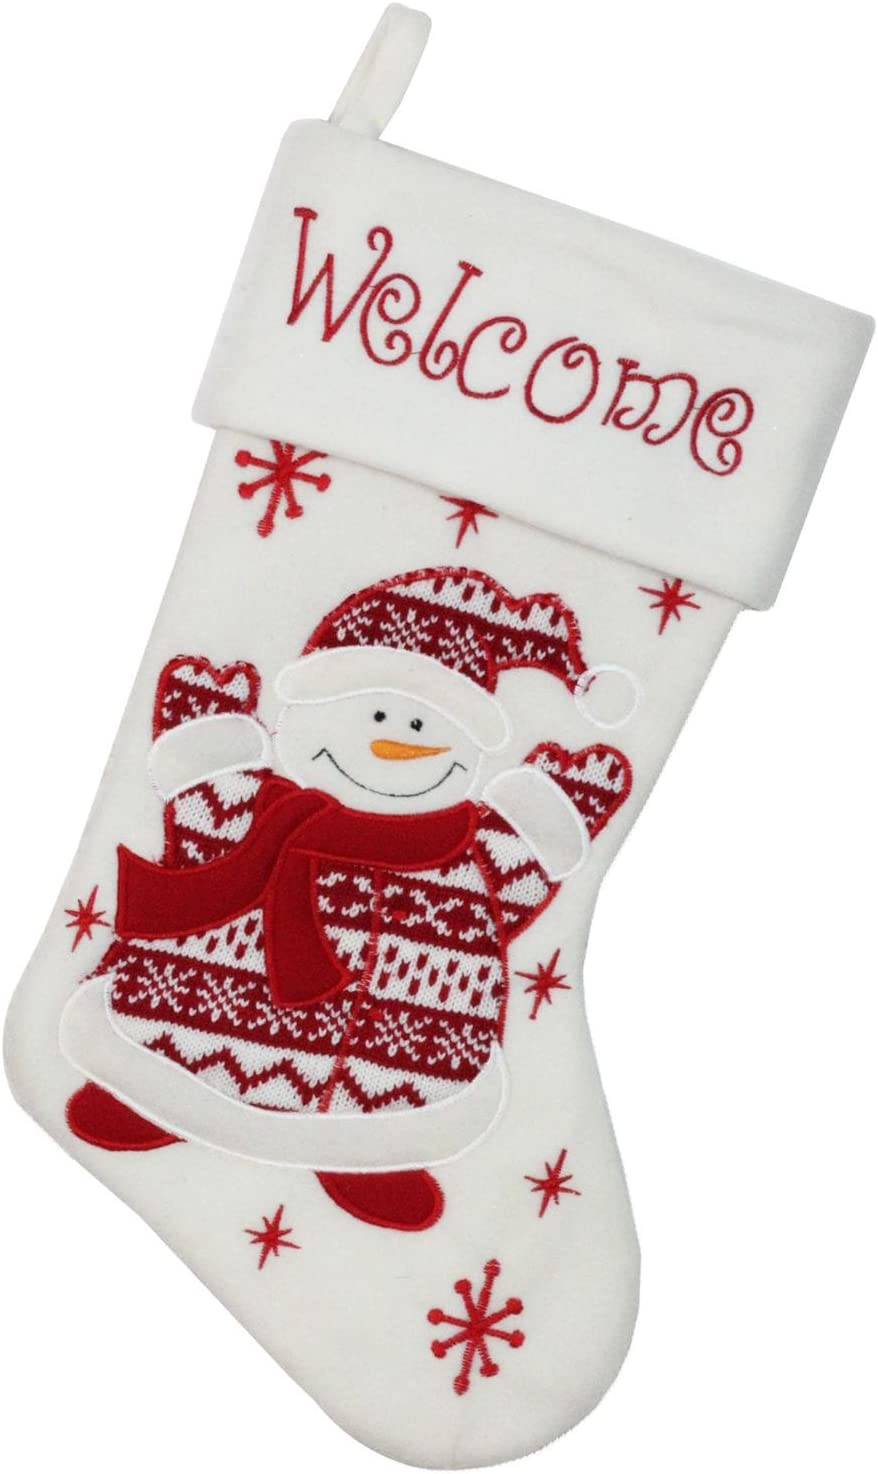 Amazon Com Northlight Welcome Snowman Embroidered Christmas Stocking 18 White Red Home Kitchen